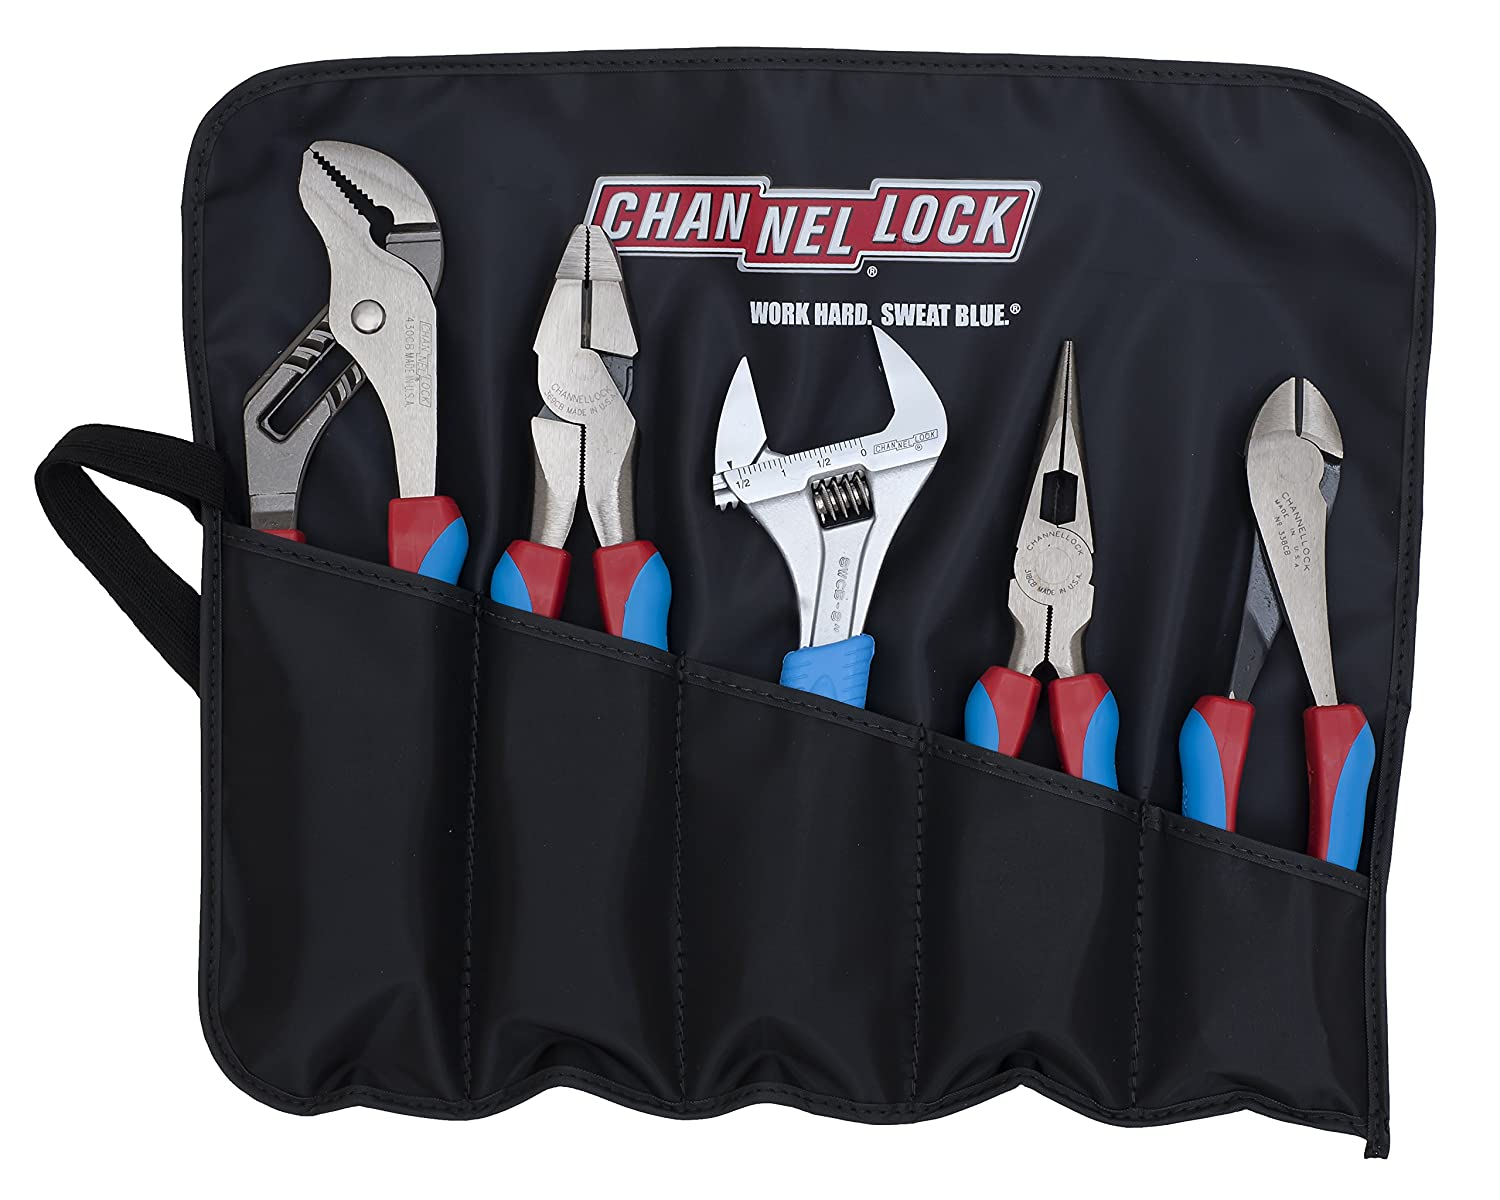 Channellock CBR-5  Code Blue Set with Tool Roll 5-Piece Channellock Inc